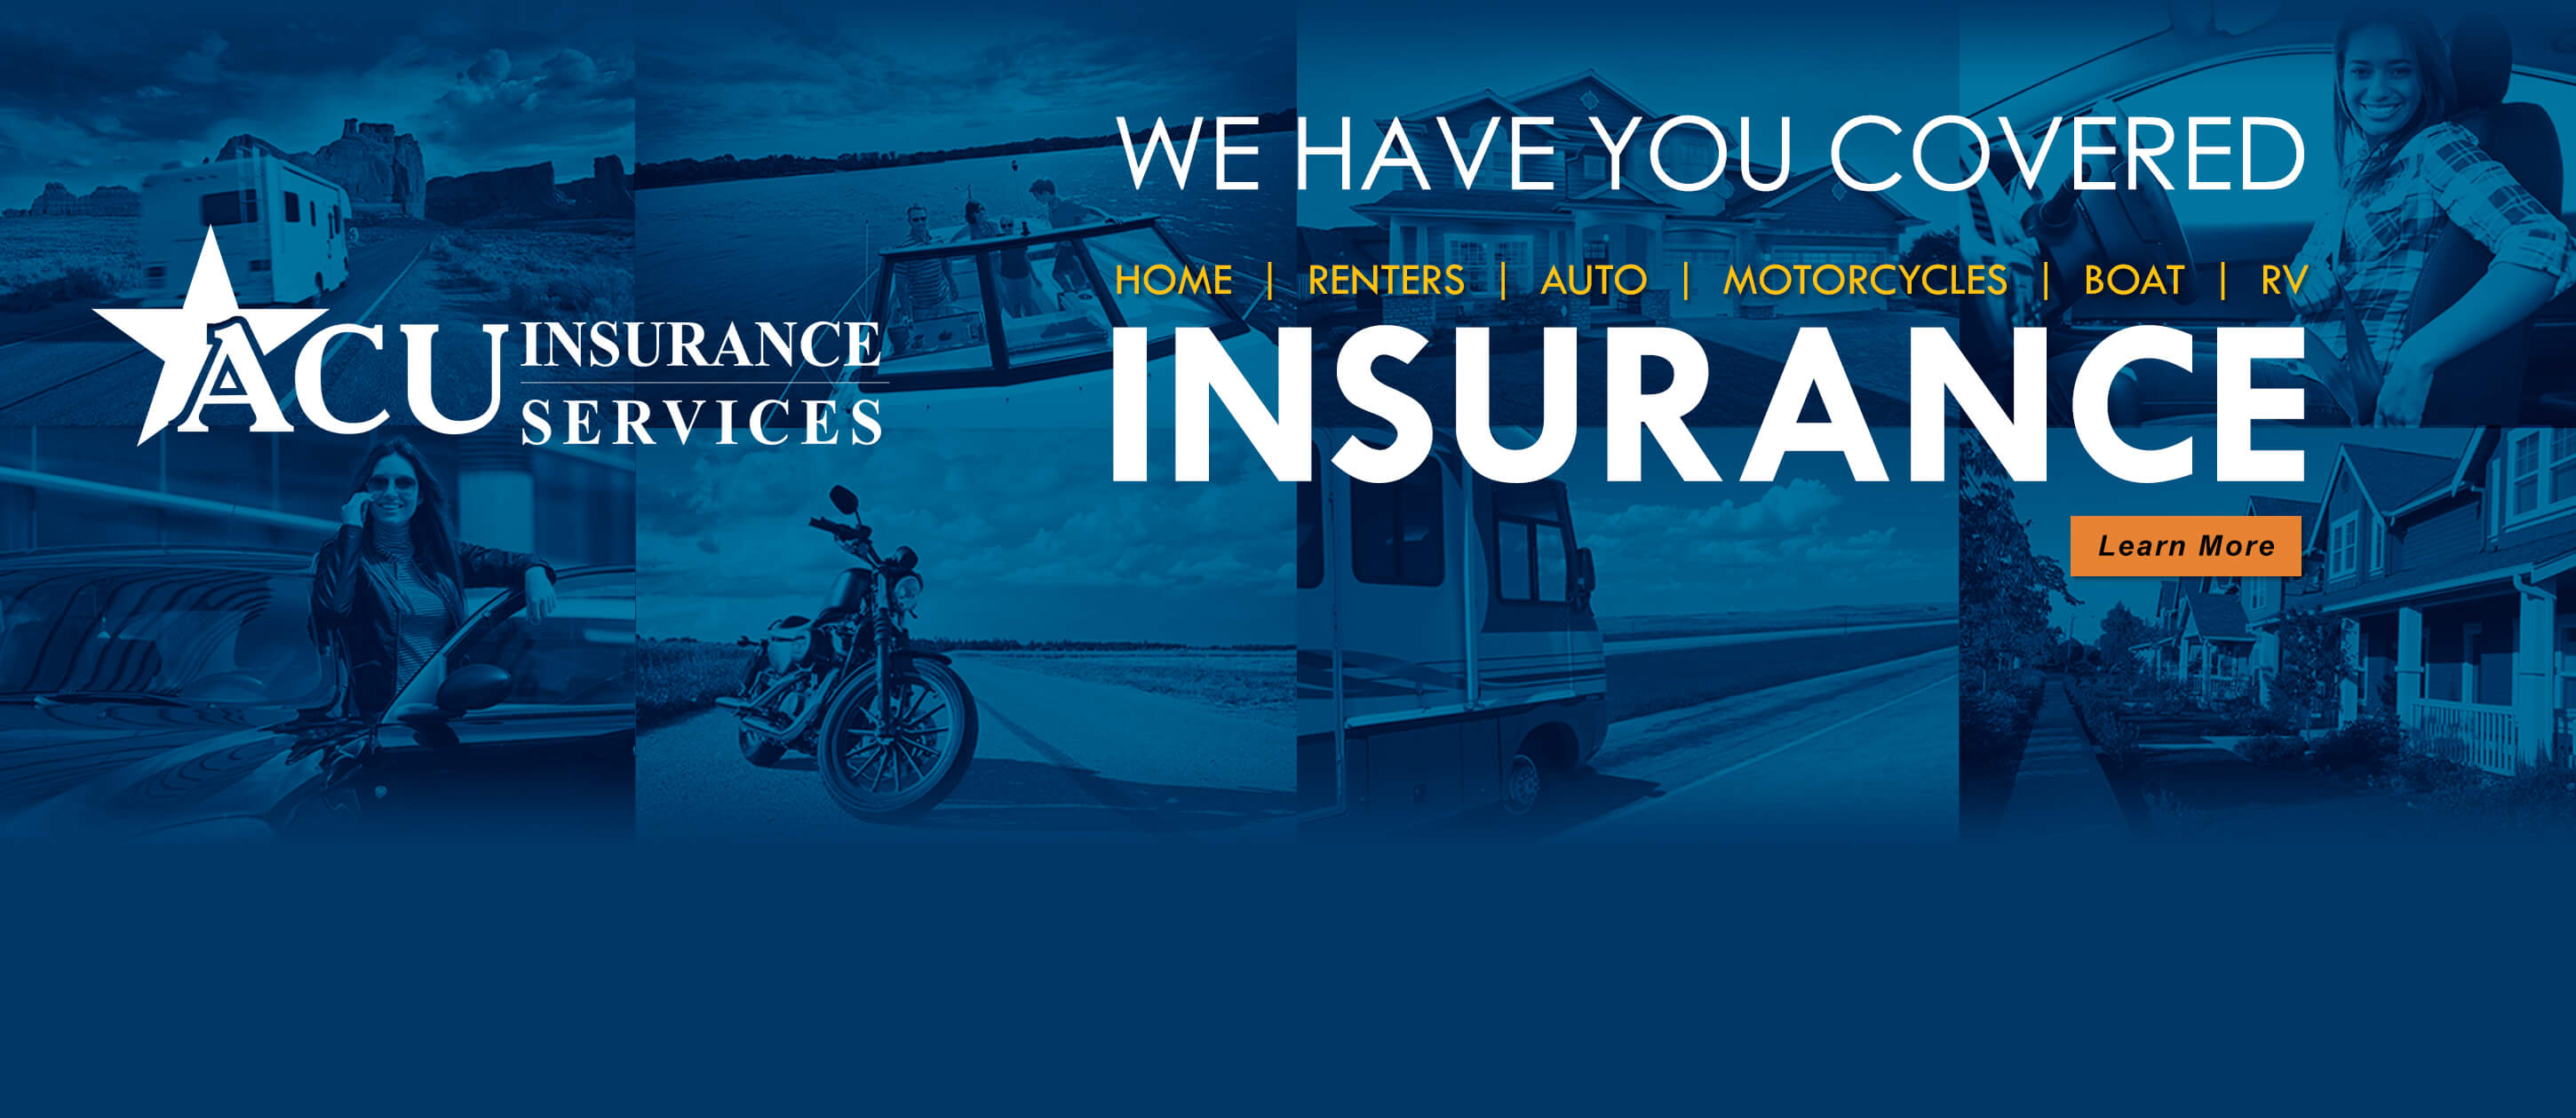 We Have You Covered / Insurance